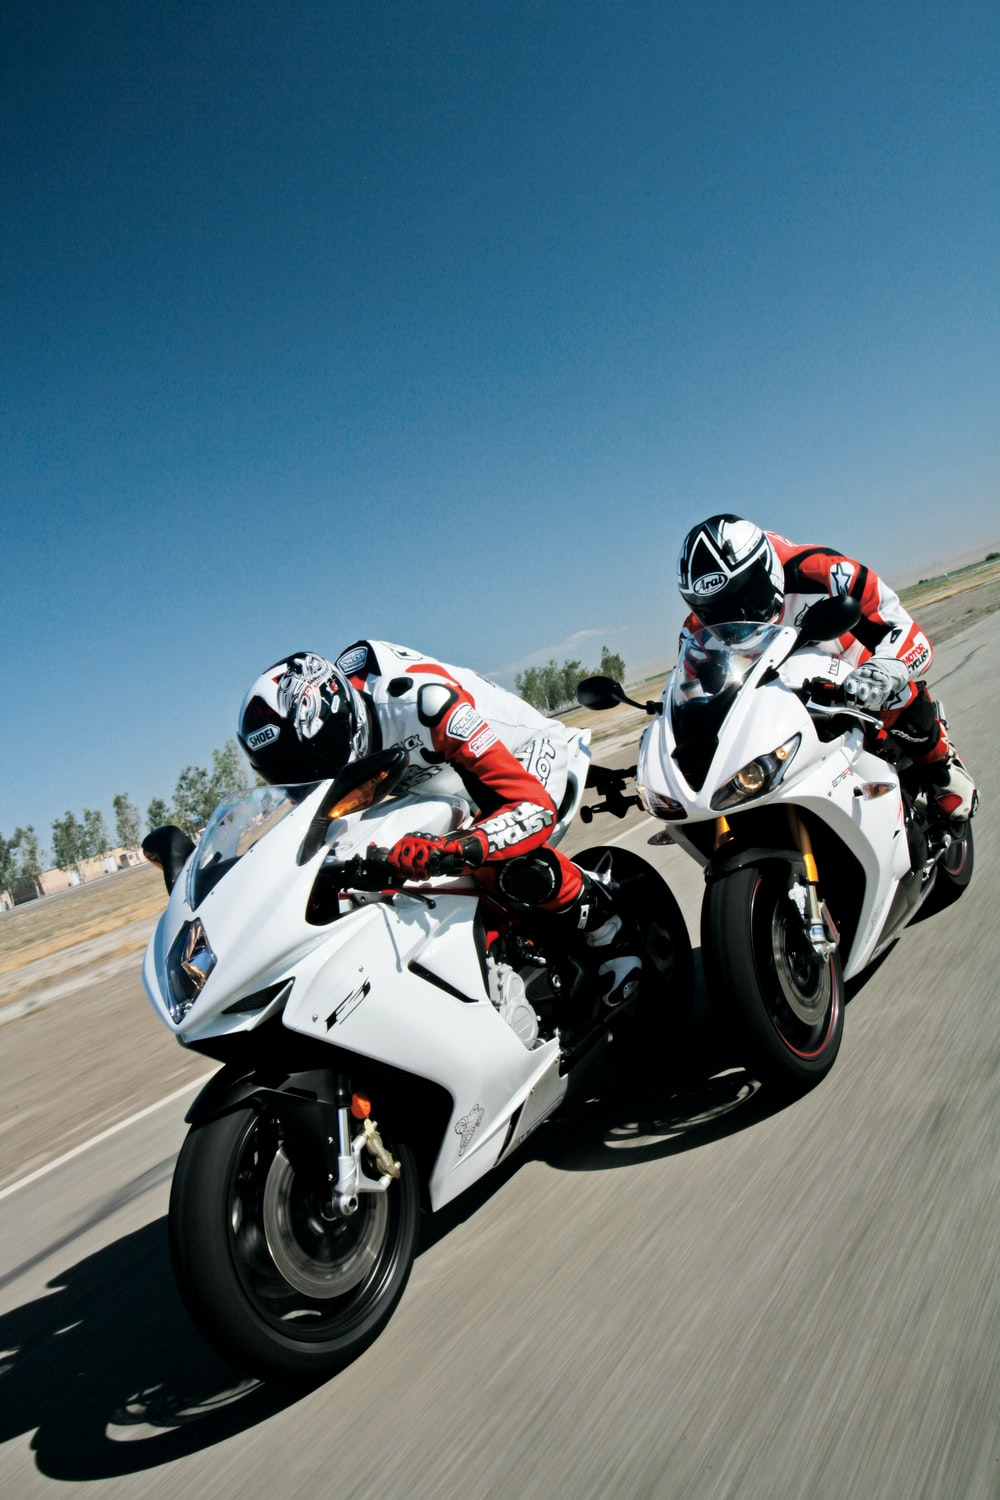 Motorbike pictures download free images on unsplash two people in crash helmets on white motorcycles racing on a track under a blue sky voltagebd Images